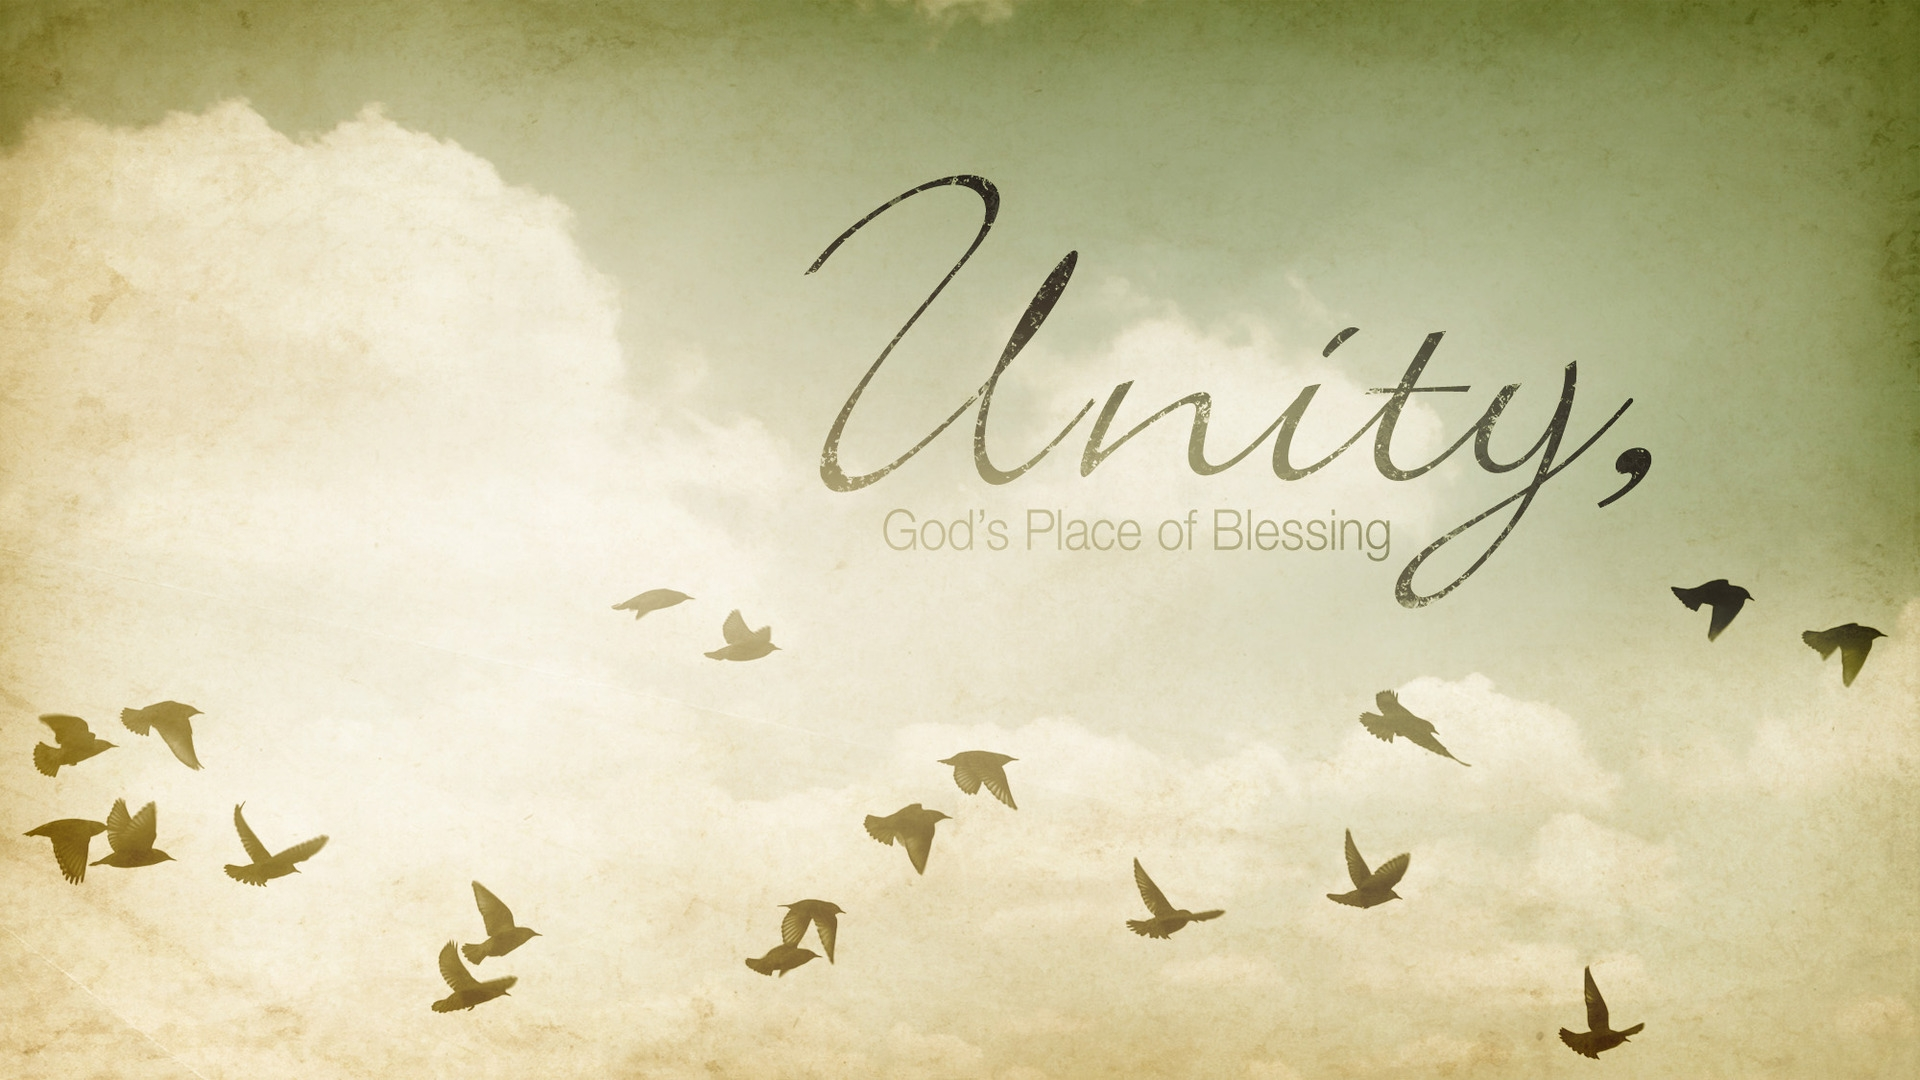 Sunday February 3, 2019 Unity: God's Place Of Blessing - Pastor Anthony Cox